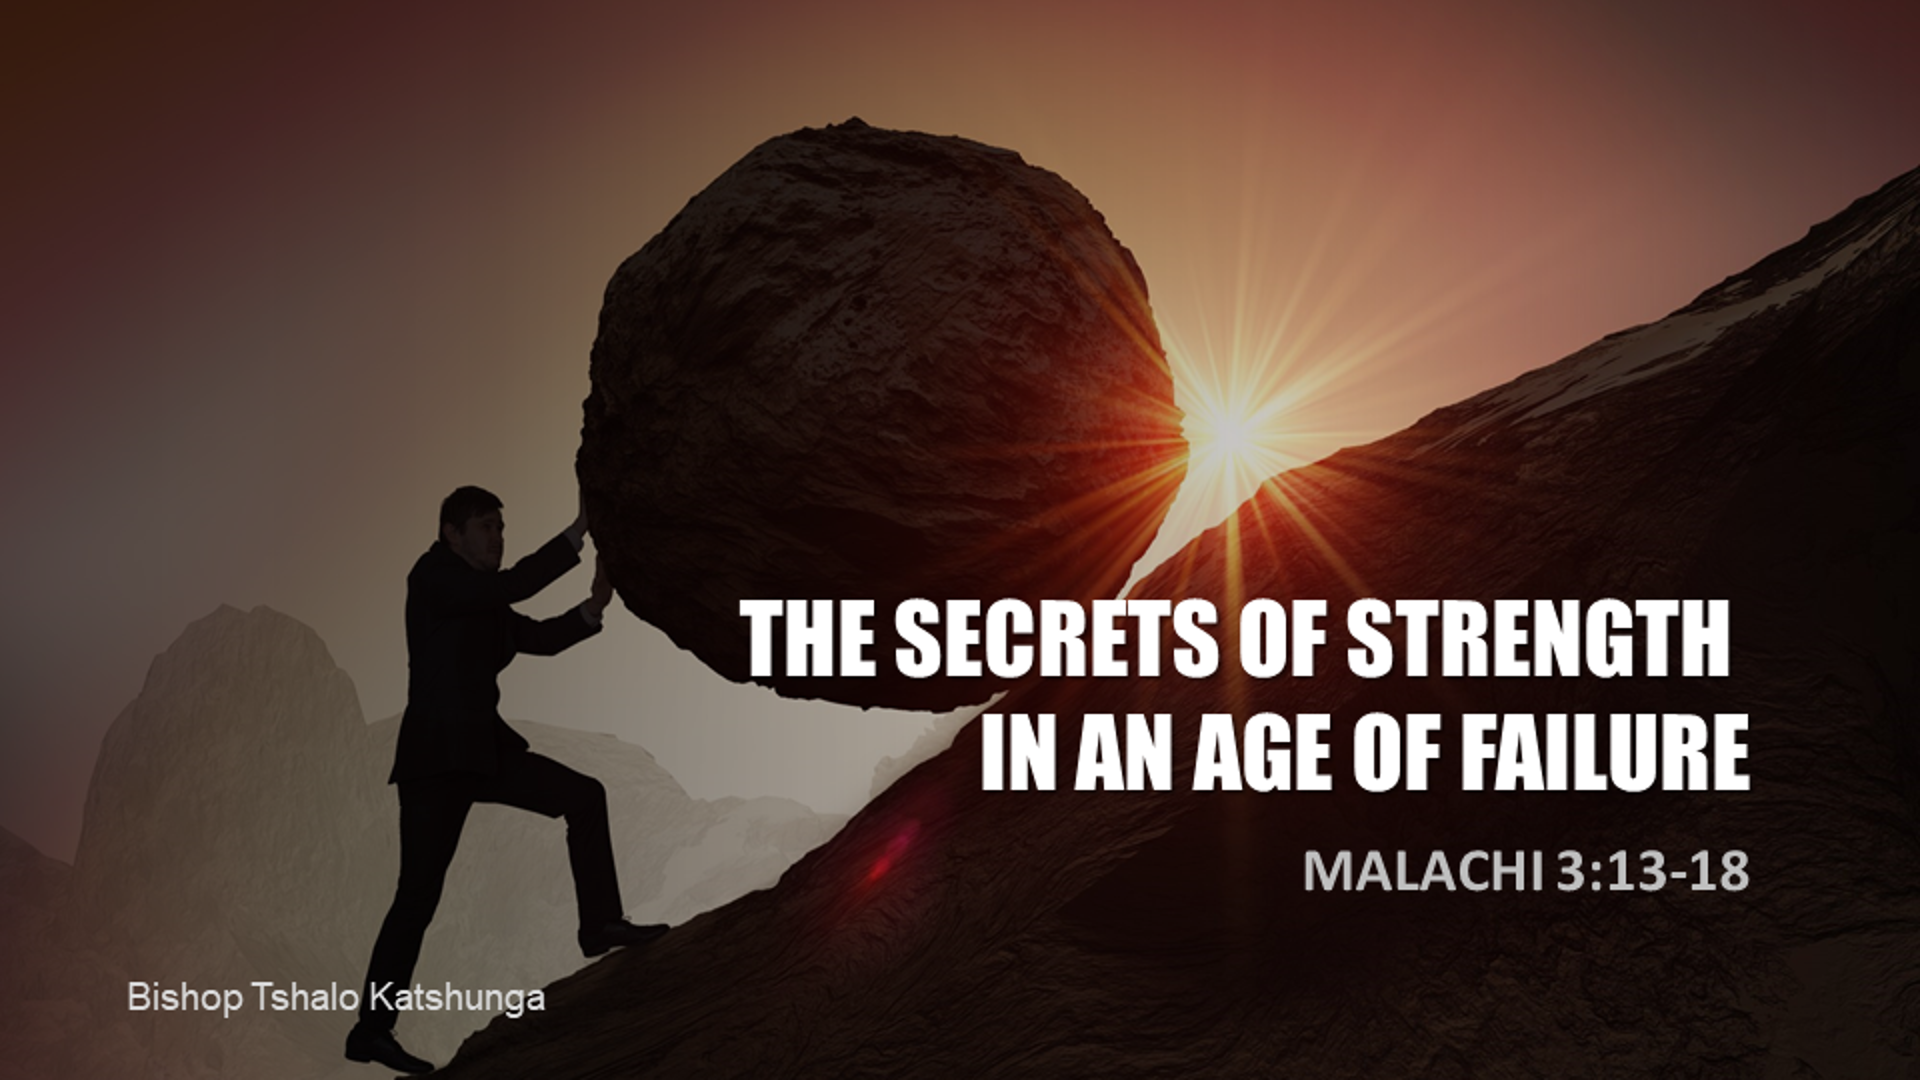 The Secrets of Strength in an Age of Failure